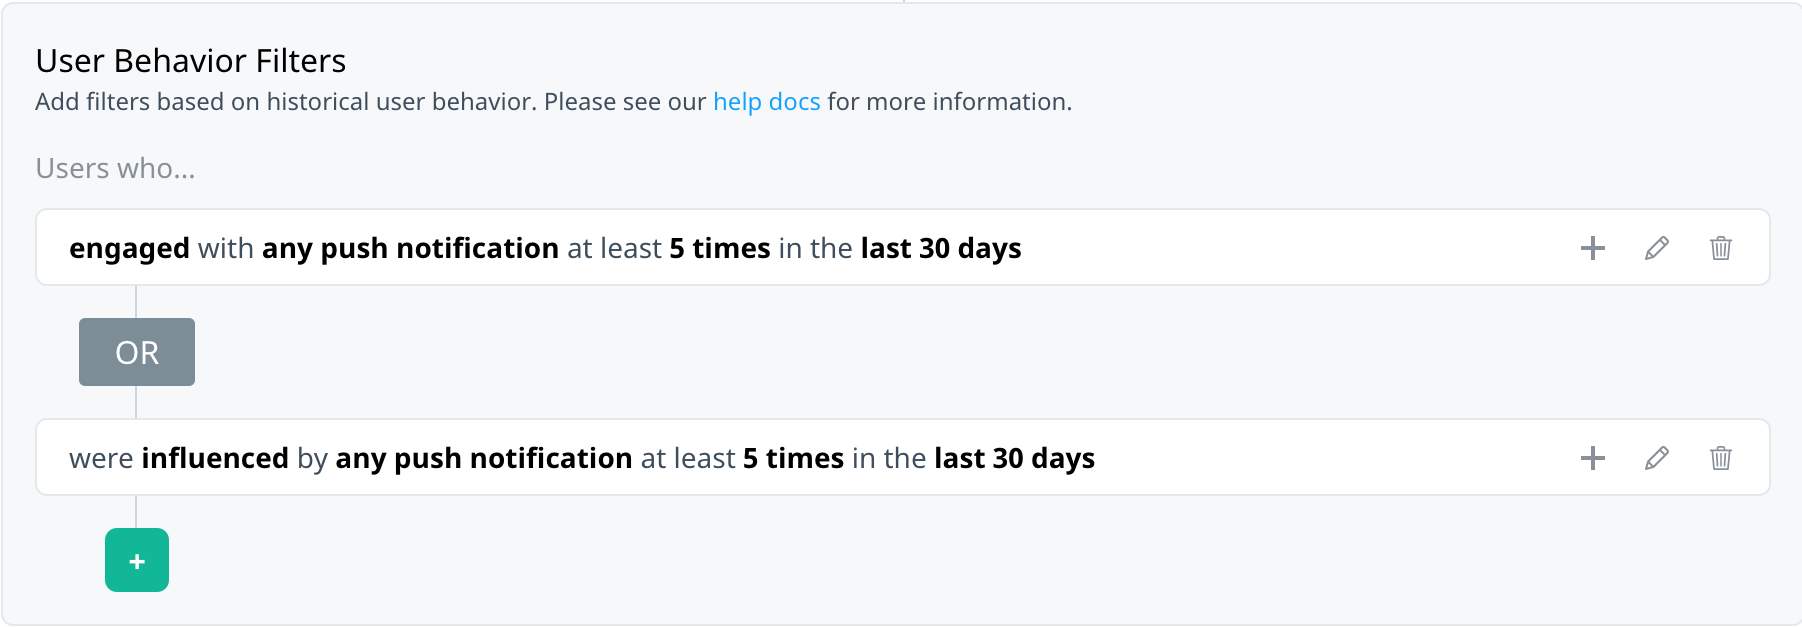 Filter summary showing audience that engaged with at least 5 notifications or were influenced by a campaign at least 5 times in the last 30 days.